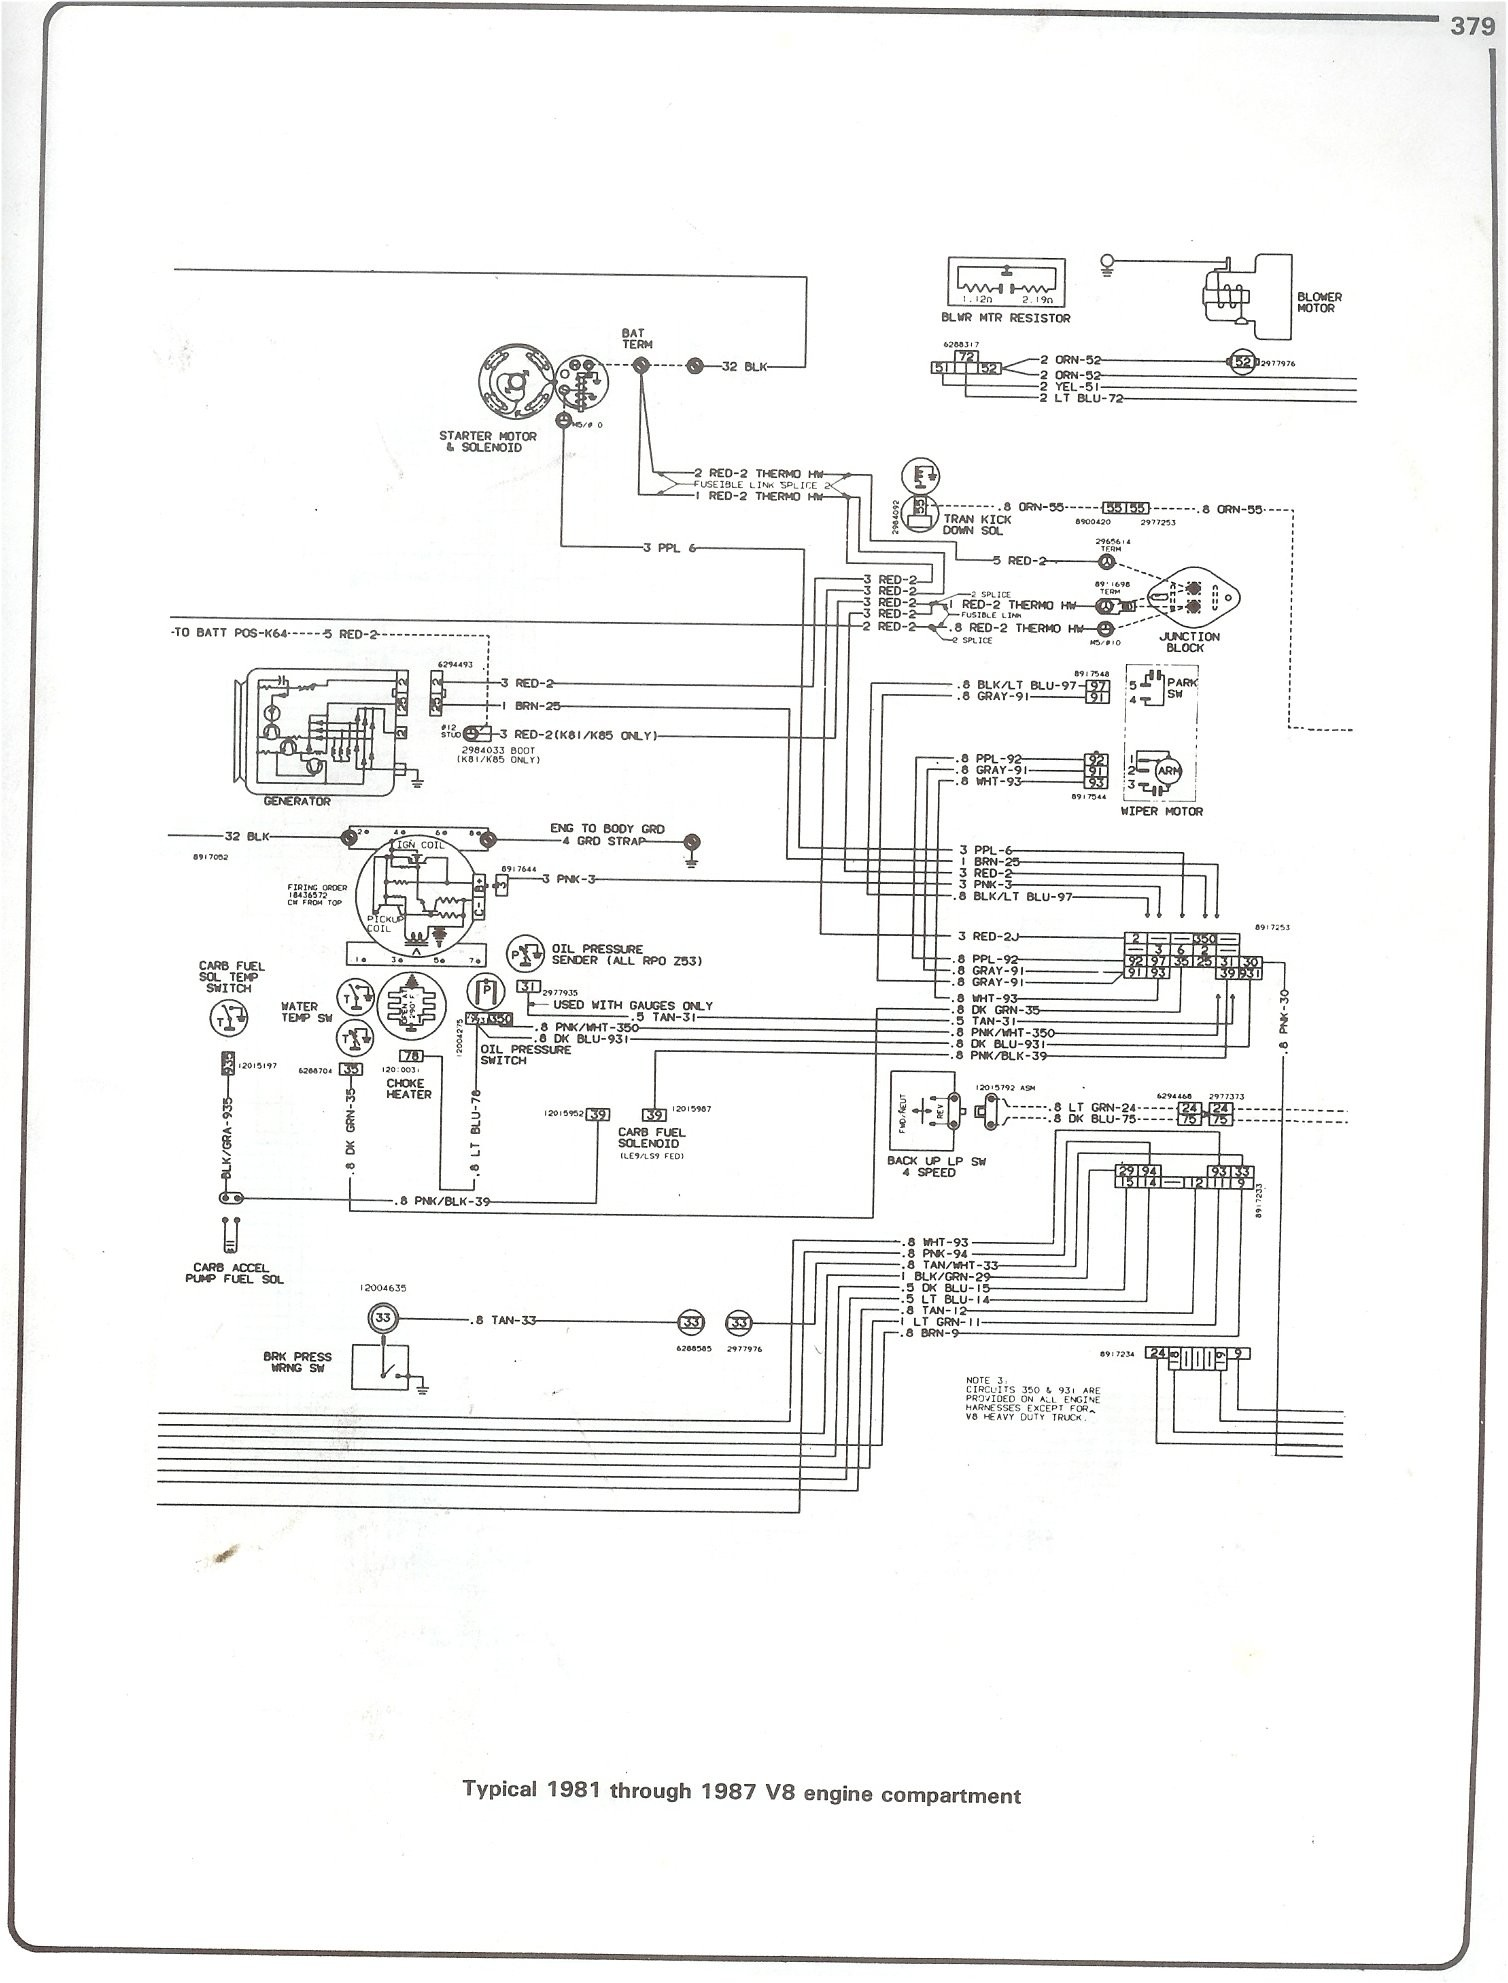 1972 K10 Wiring Diagram Free For You 86 Chevy 305 1986 Of Truck Library 1978 1973